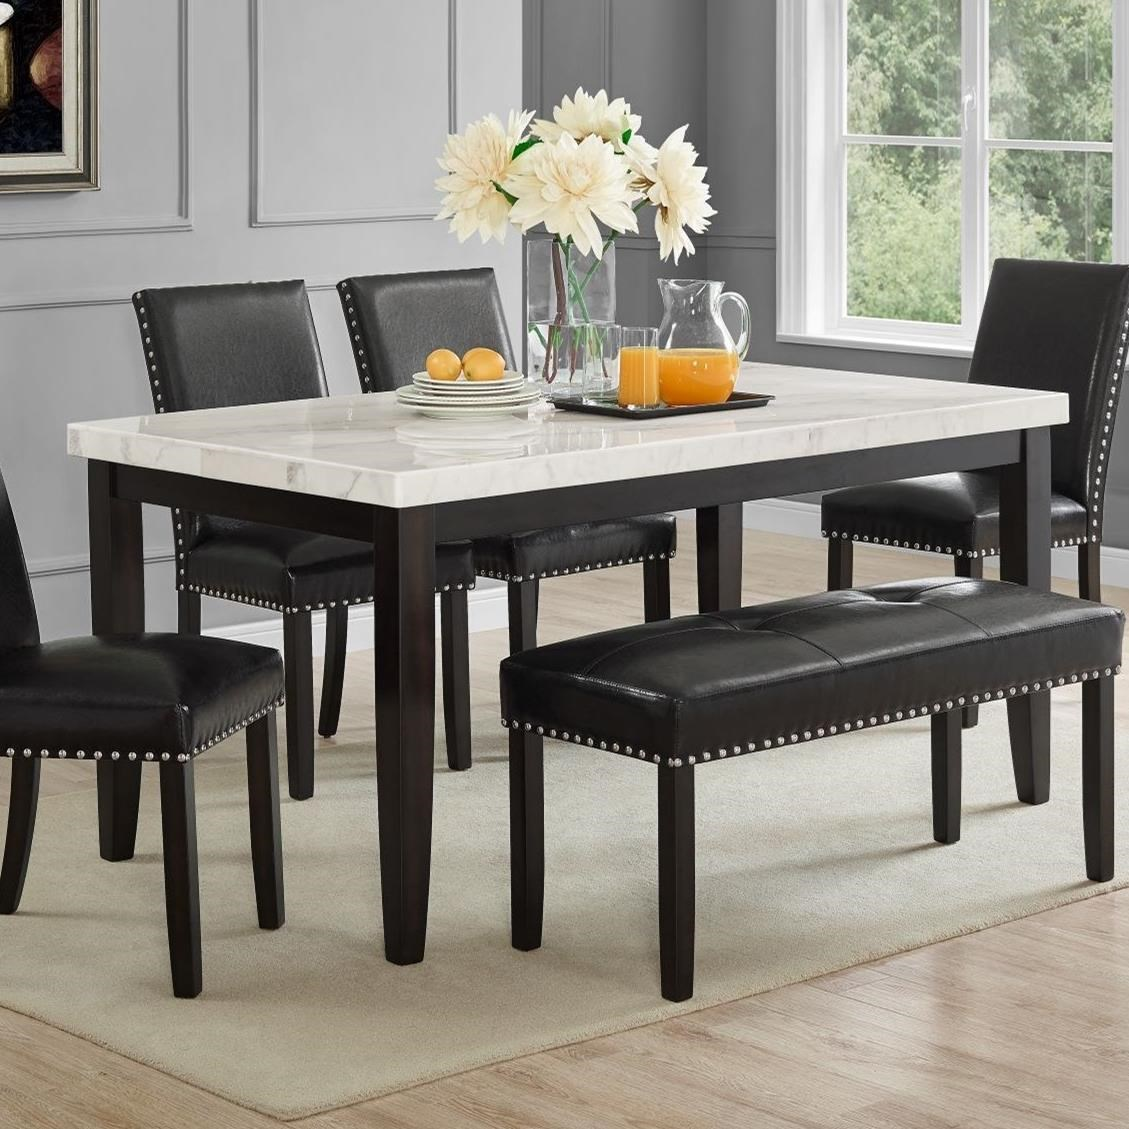 Steve Silver Westby 1344946 Transitional White Marble Top Dining Table Dunk Bright Furniture Dining Tables